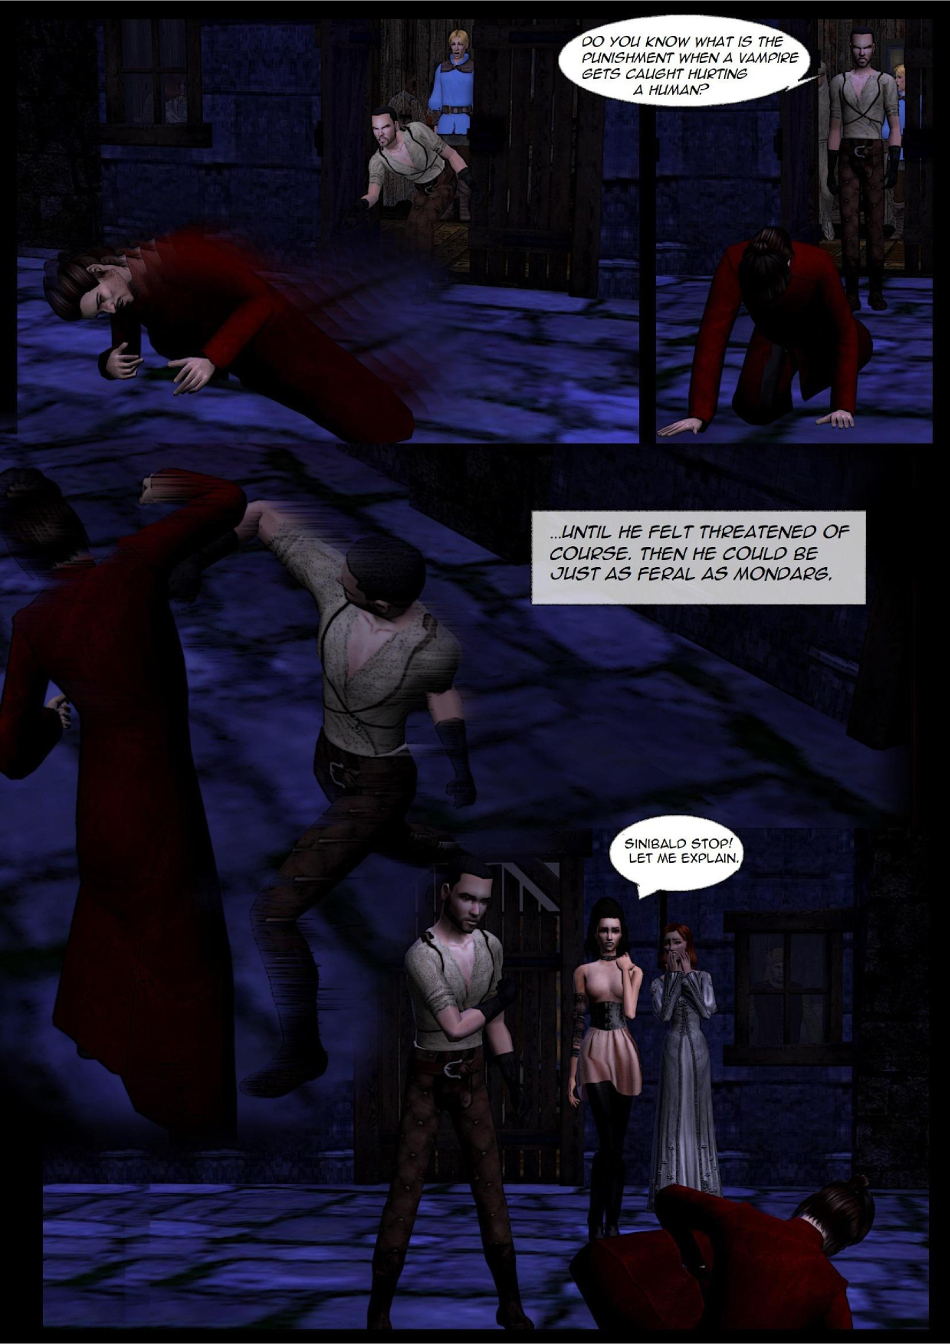 The Blackbear's tavern p18